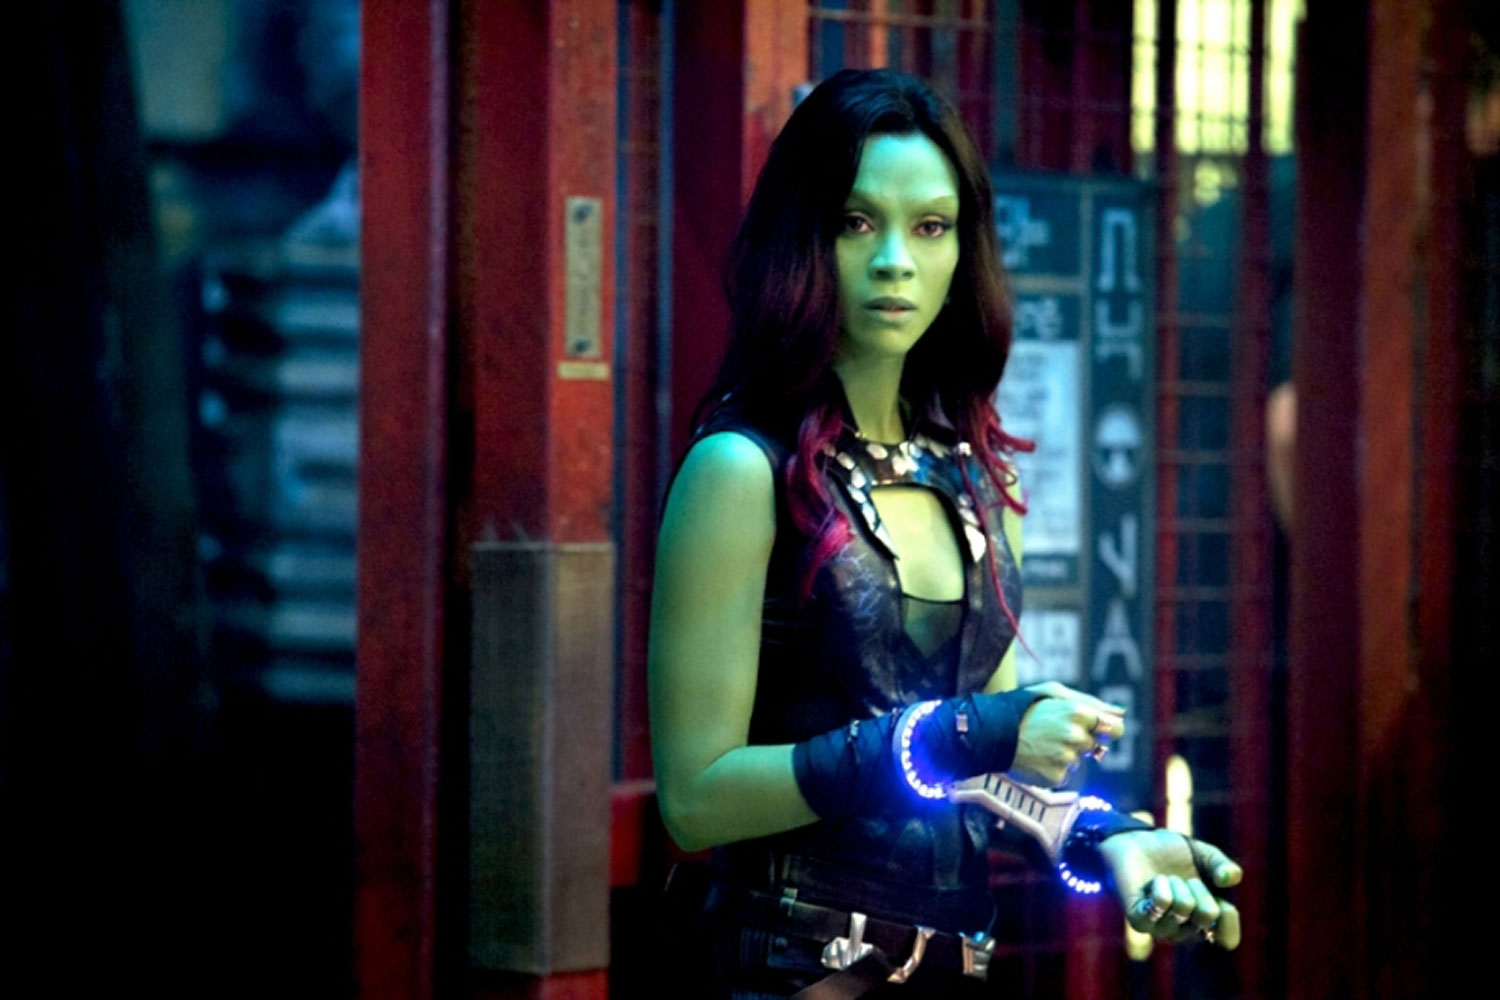 Zoe Saldana as Gamora in Marvel's Guardians of the Galaxy